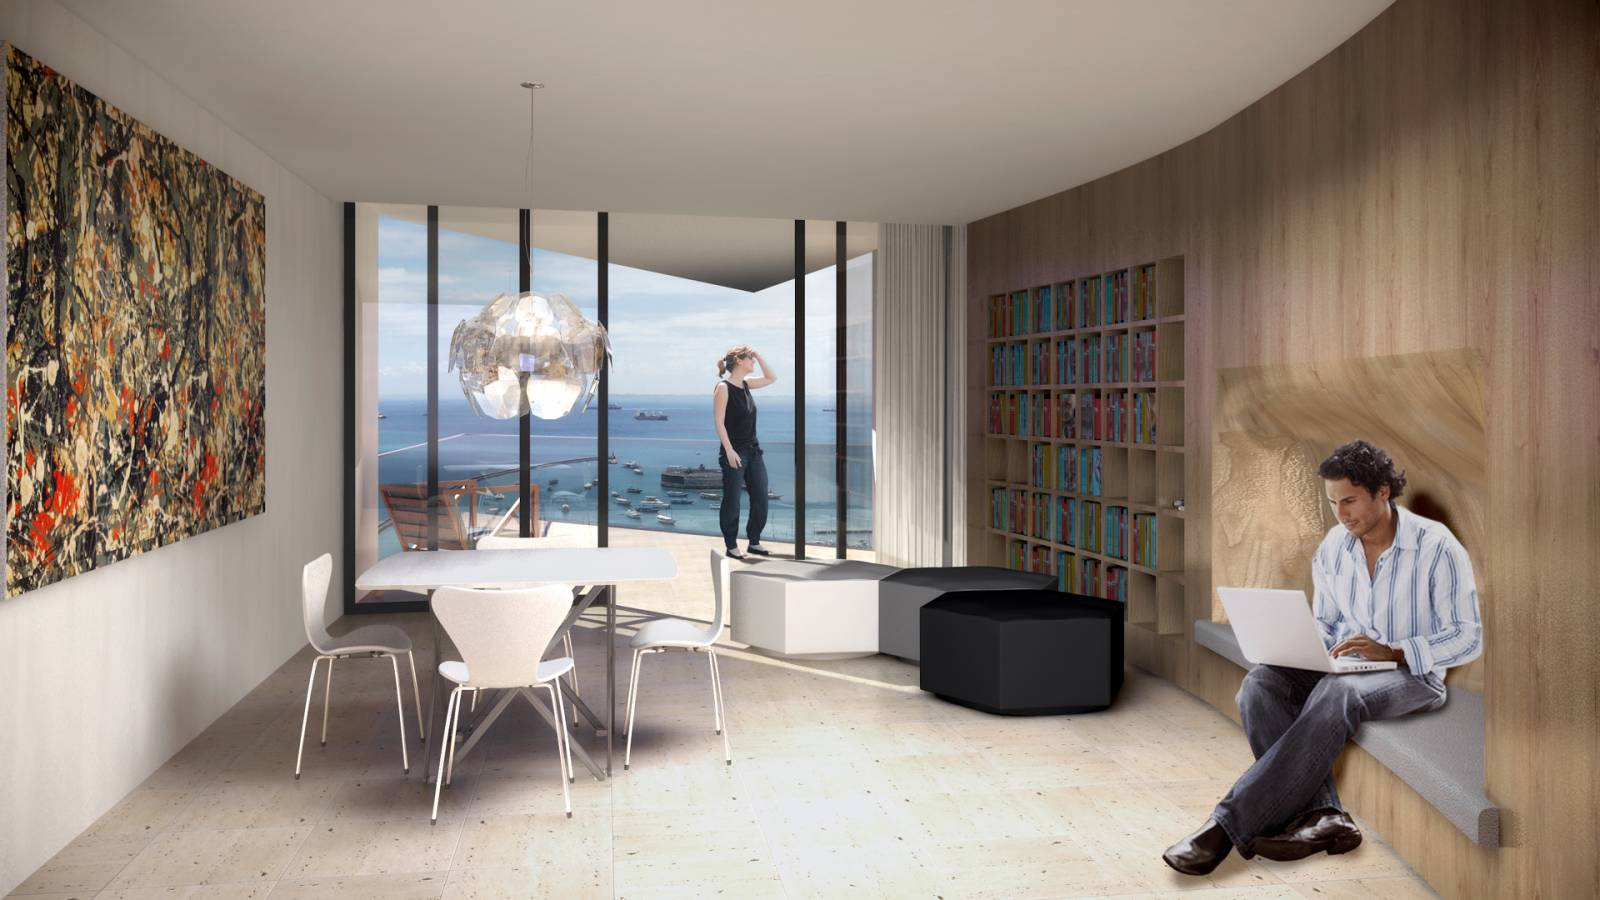 PENTHOUSE INTERIOR PERSPECTIVE  - Salvador Lofts - SPOL Architects